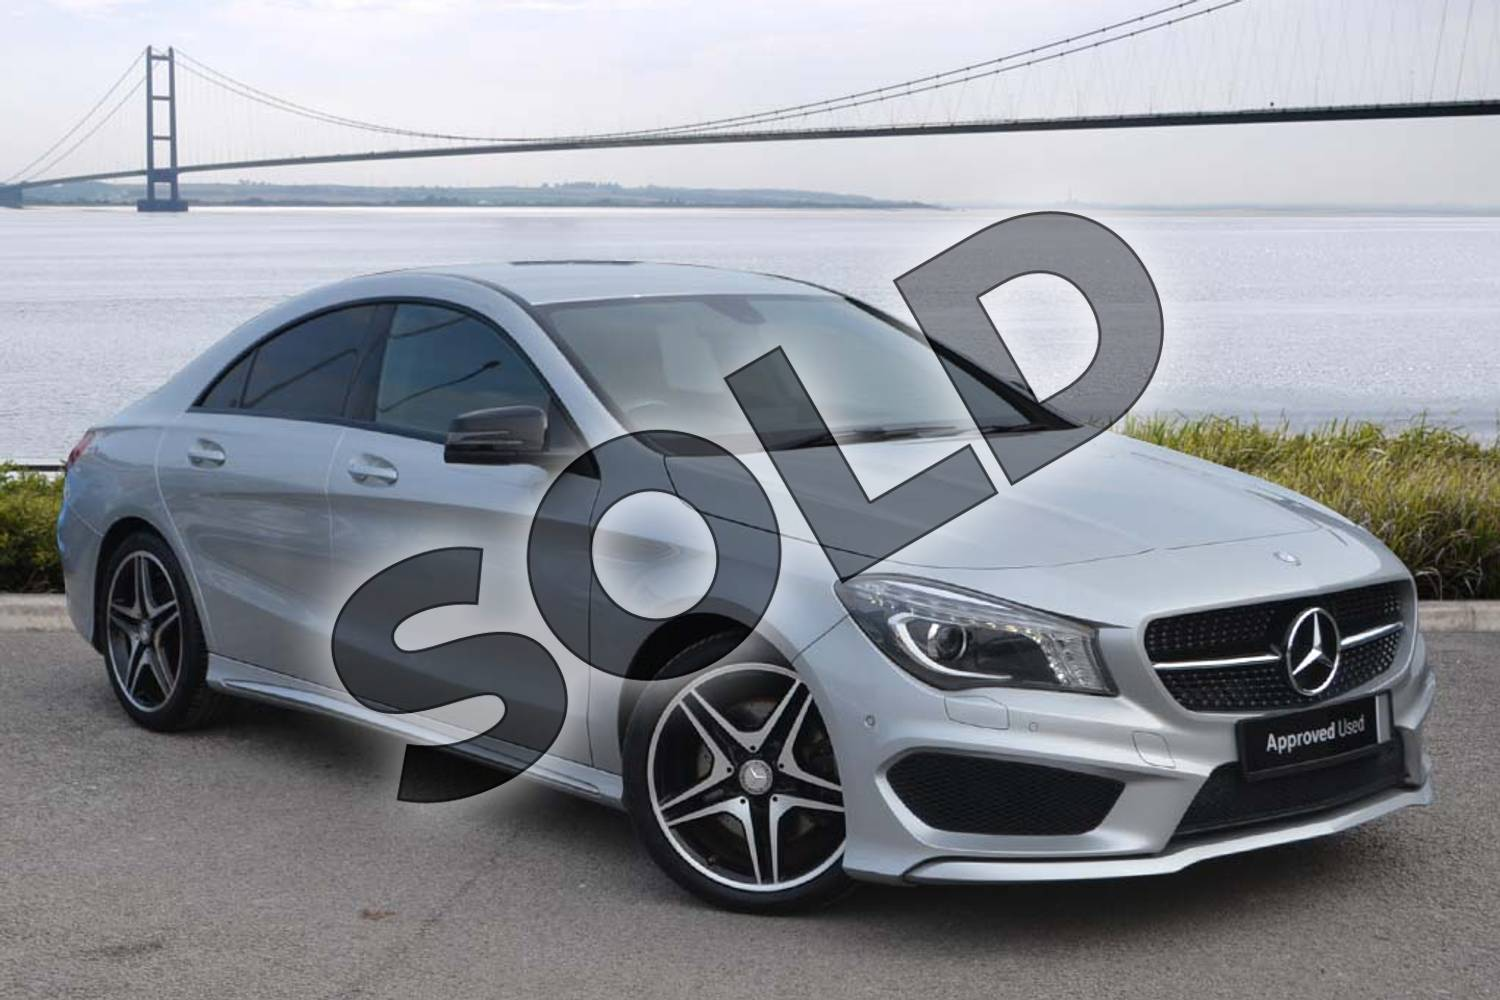 2014 Mercedes-Benz CLA Diesel Coupe CLA 220 CDI AMG Sport 4dr Tip Auto in Polar silver metallic at Mercedes-Benz of Hull